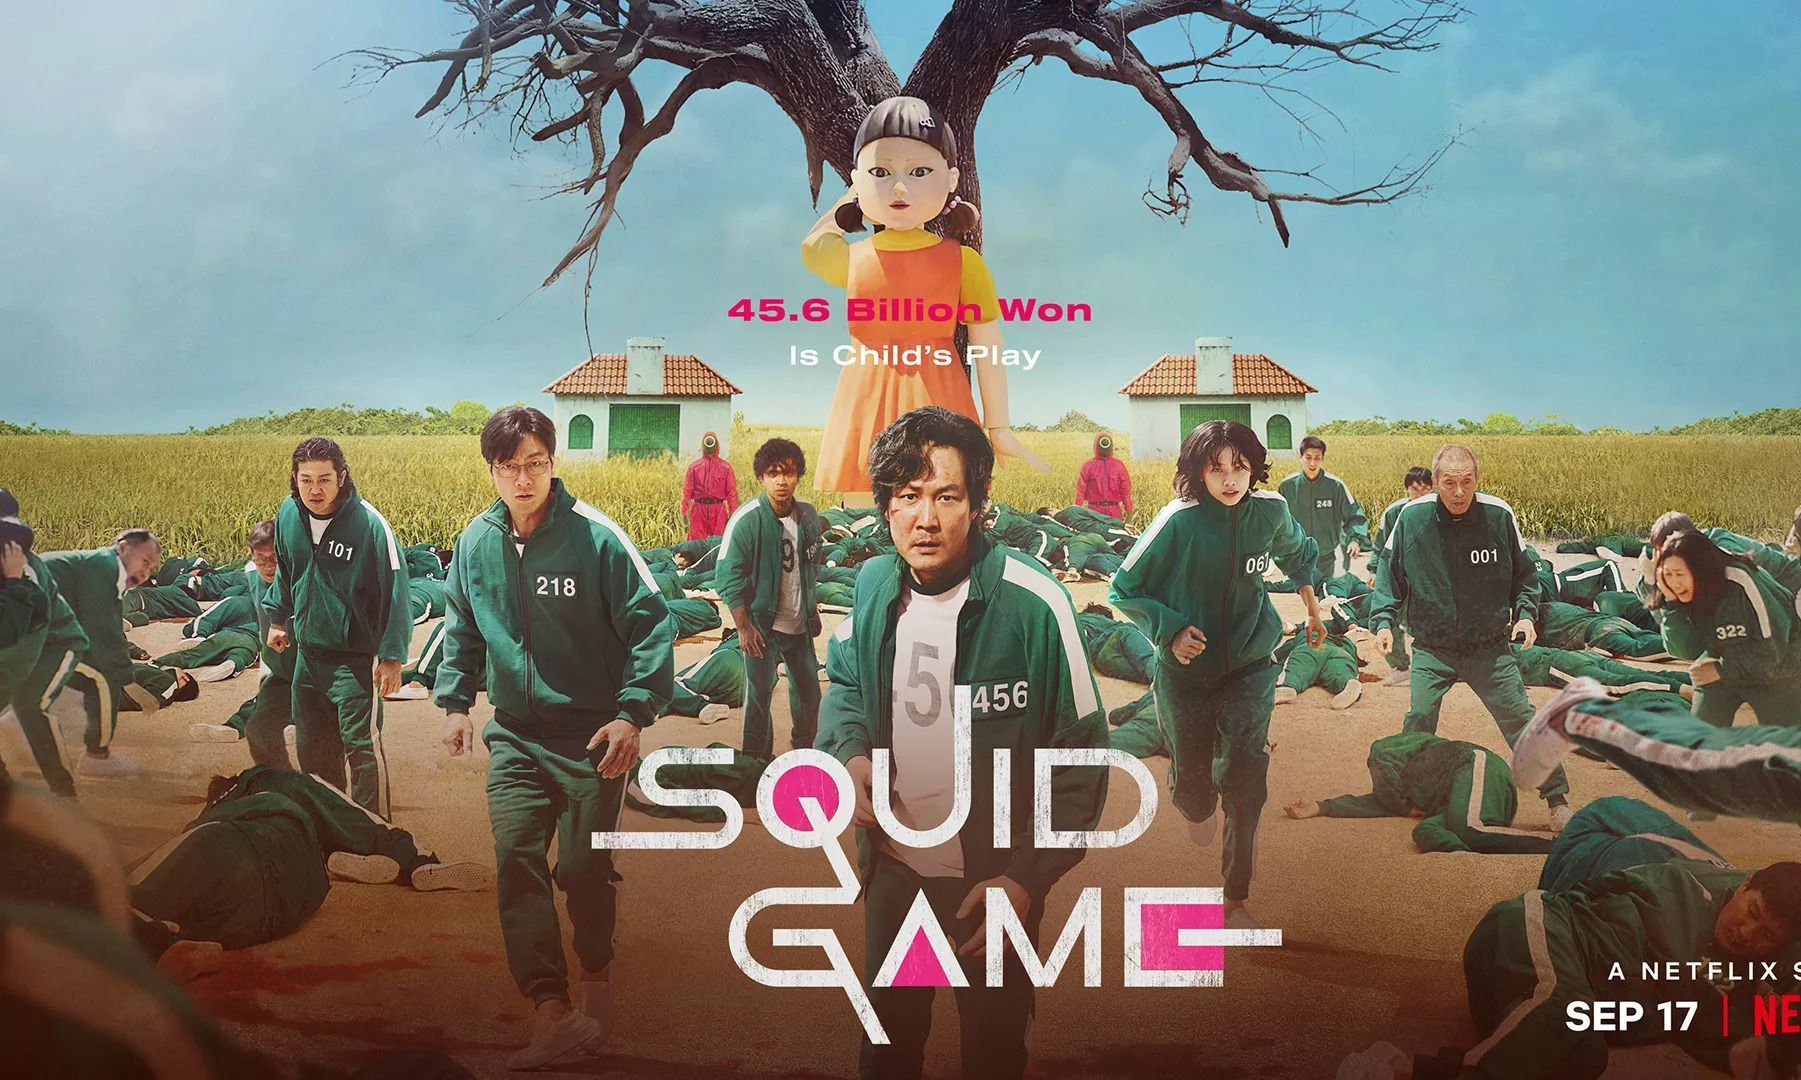 South Korea's 'Squid Game' is officially Netflix's biggest original show debut